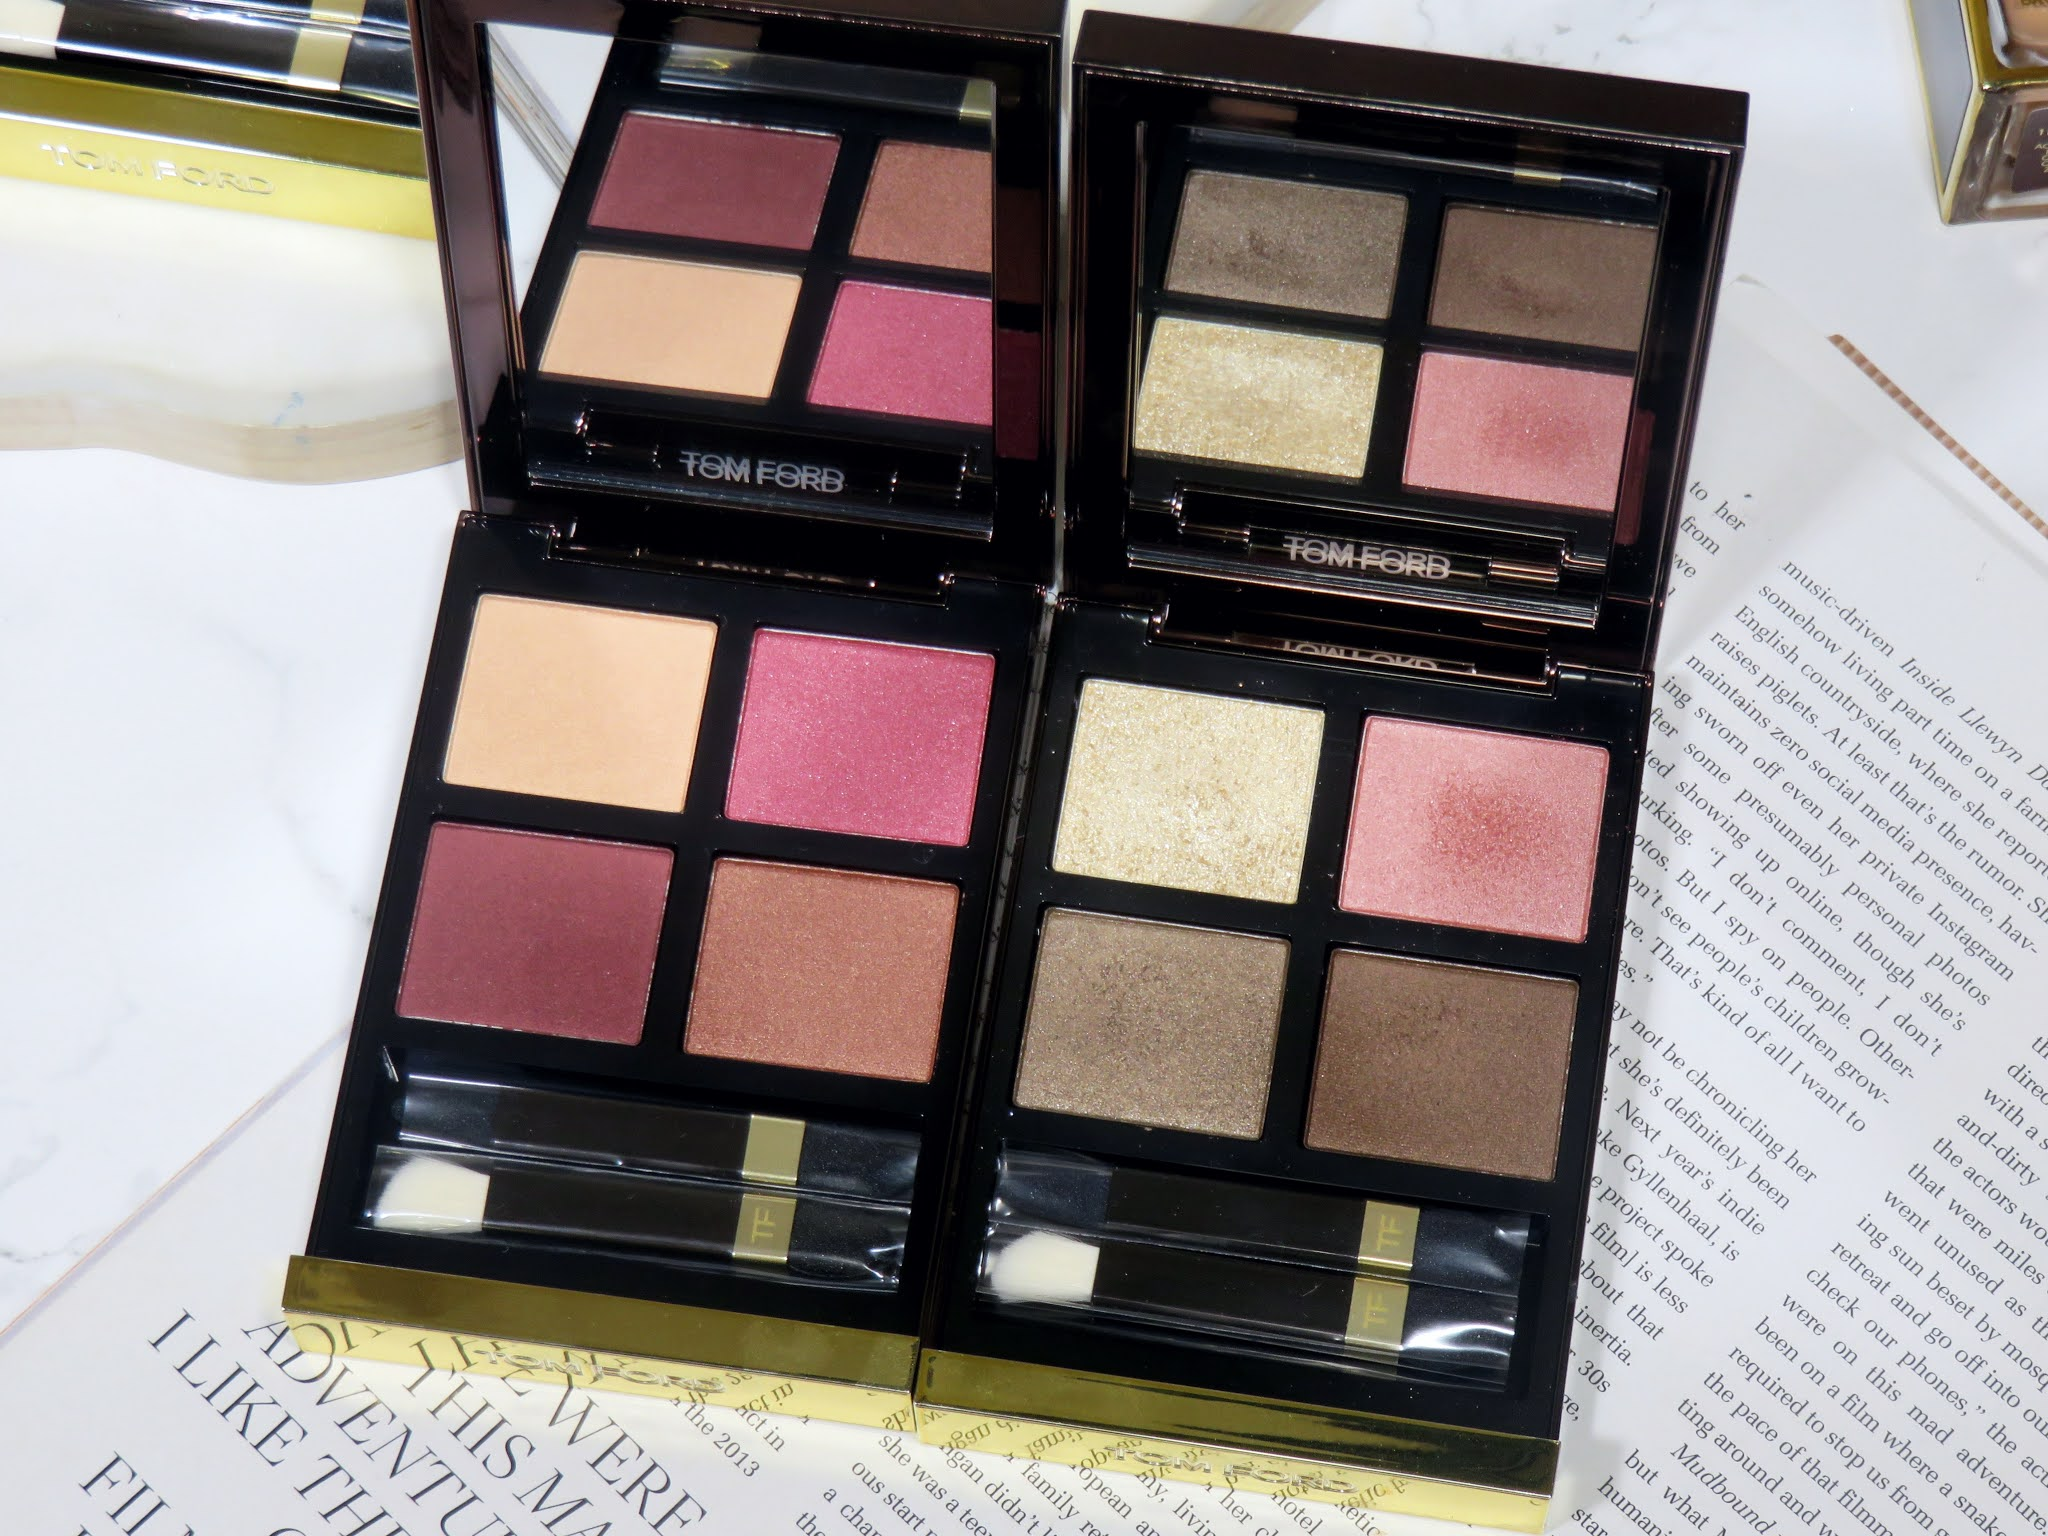 Tom Ford Burnished Amber Eye Color Quad Review and Swatches